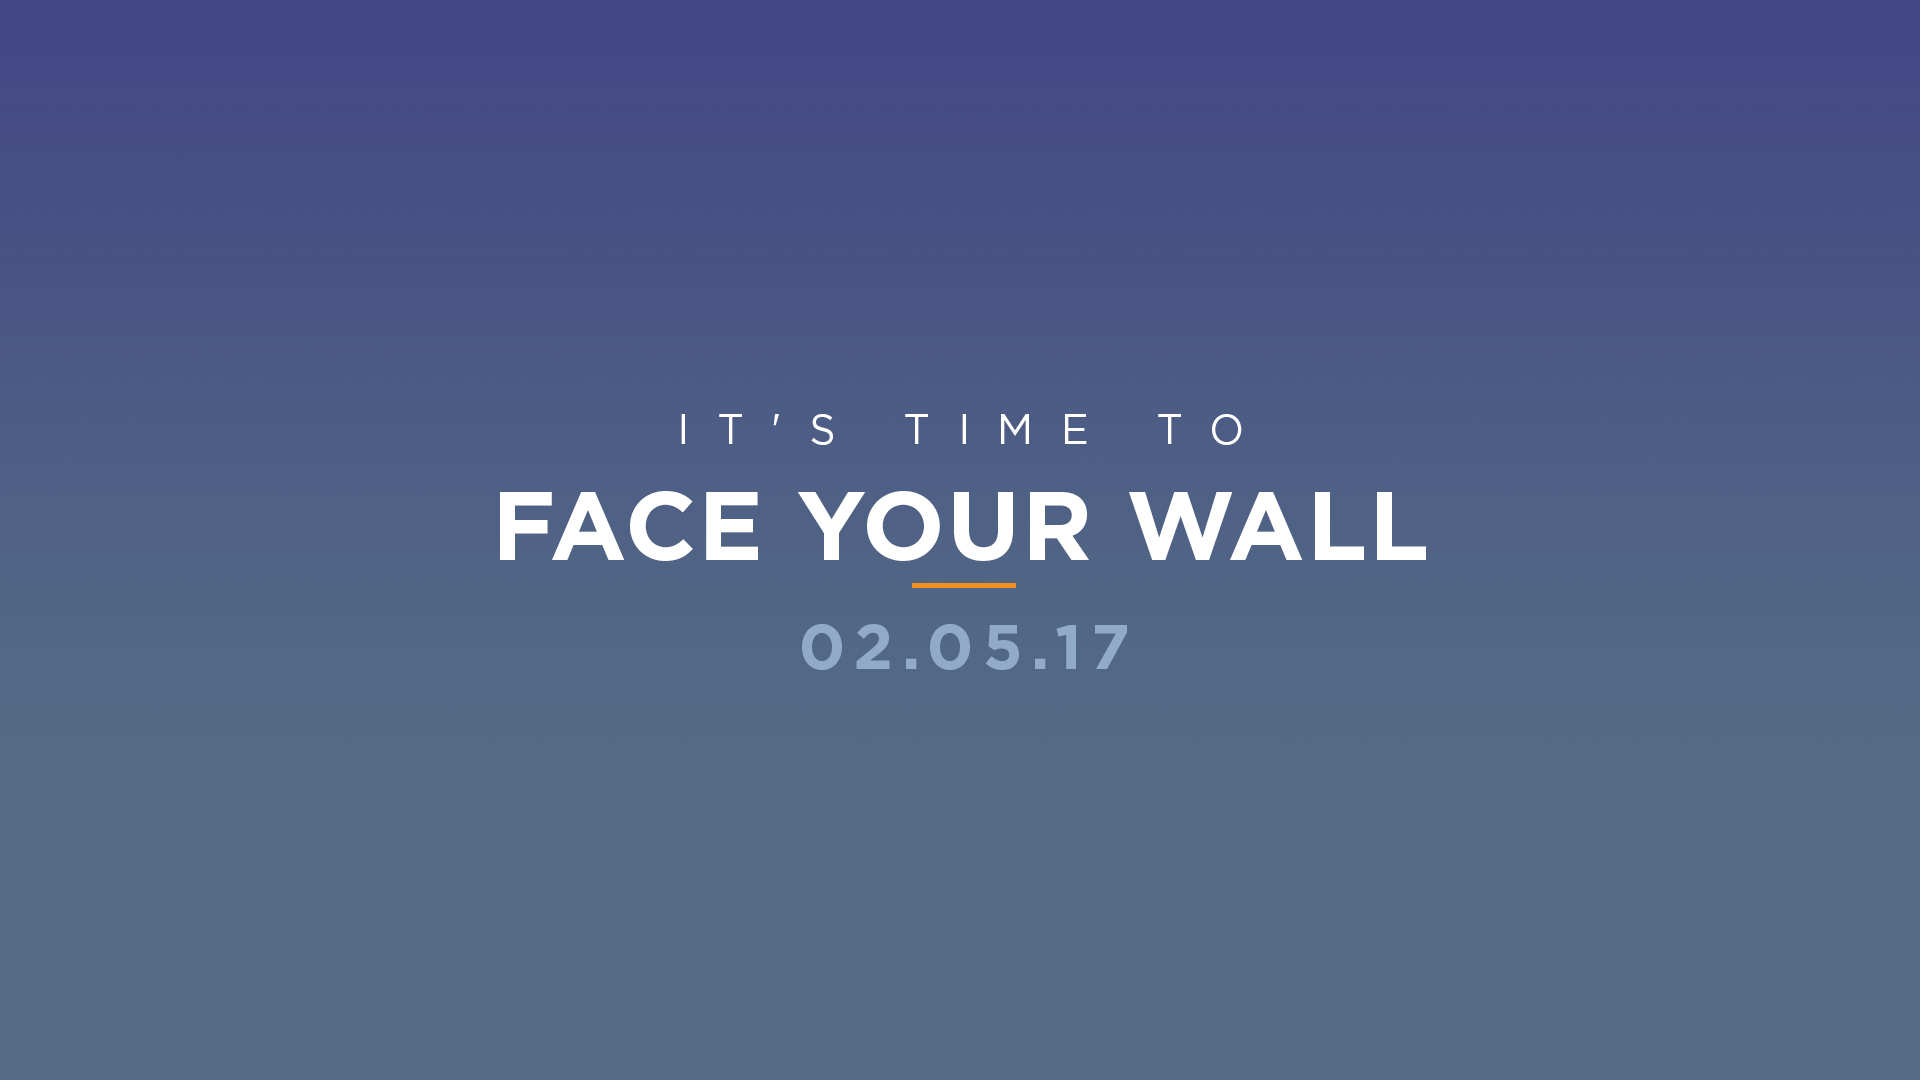 It's Time To Face Your Wall